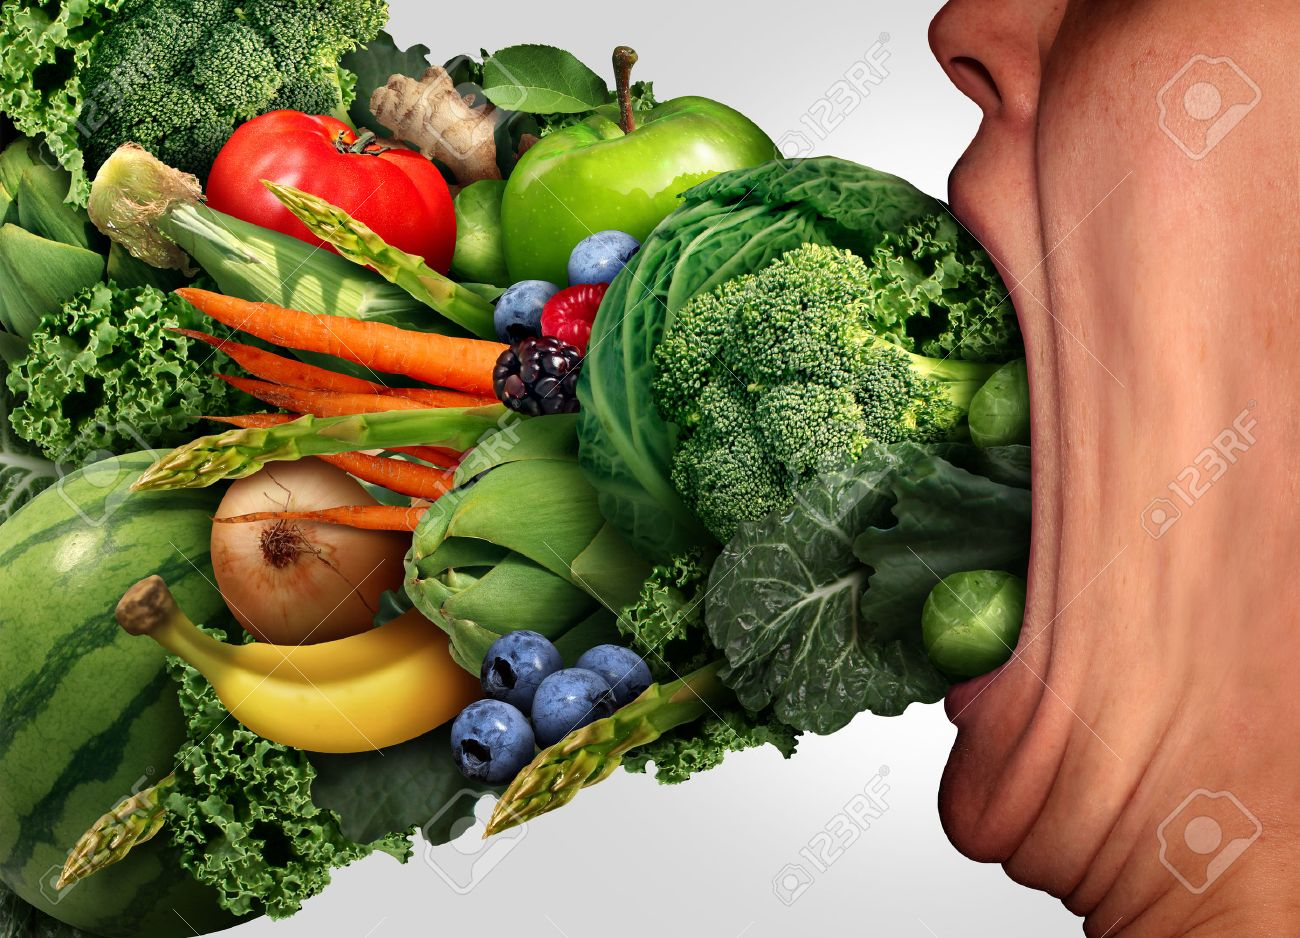 eat healthy nutrition concept as a person with a wide open stretched